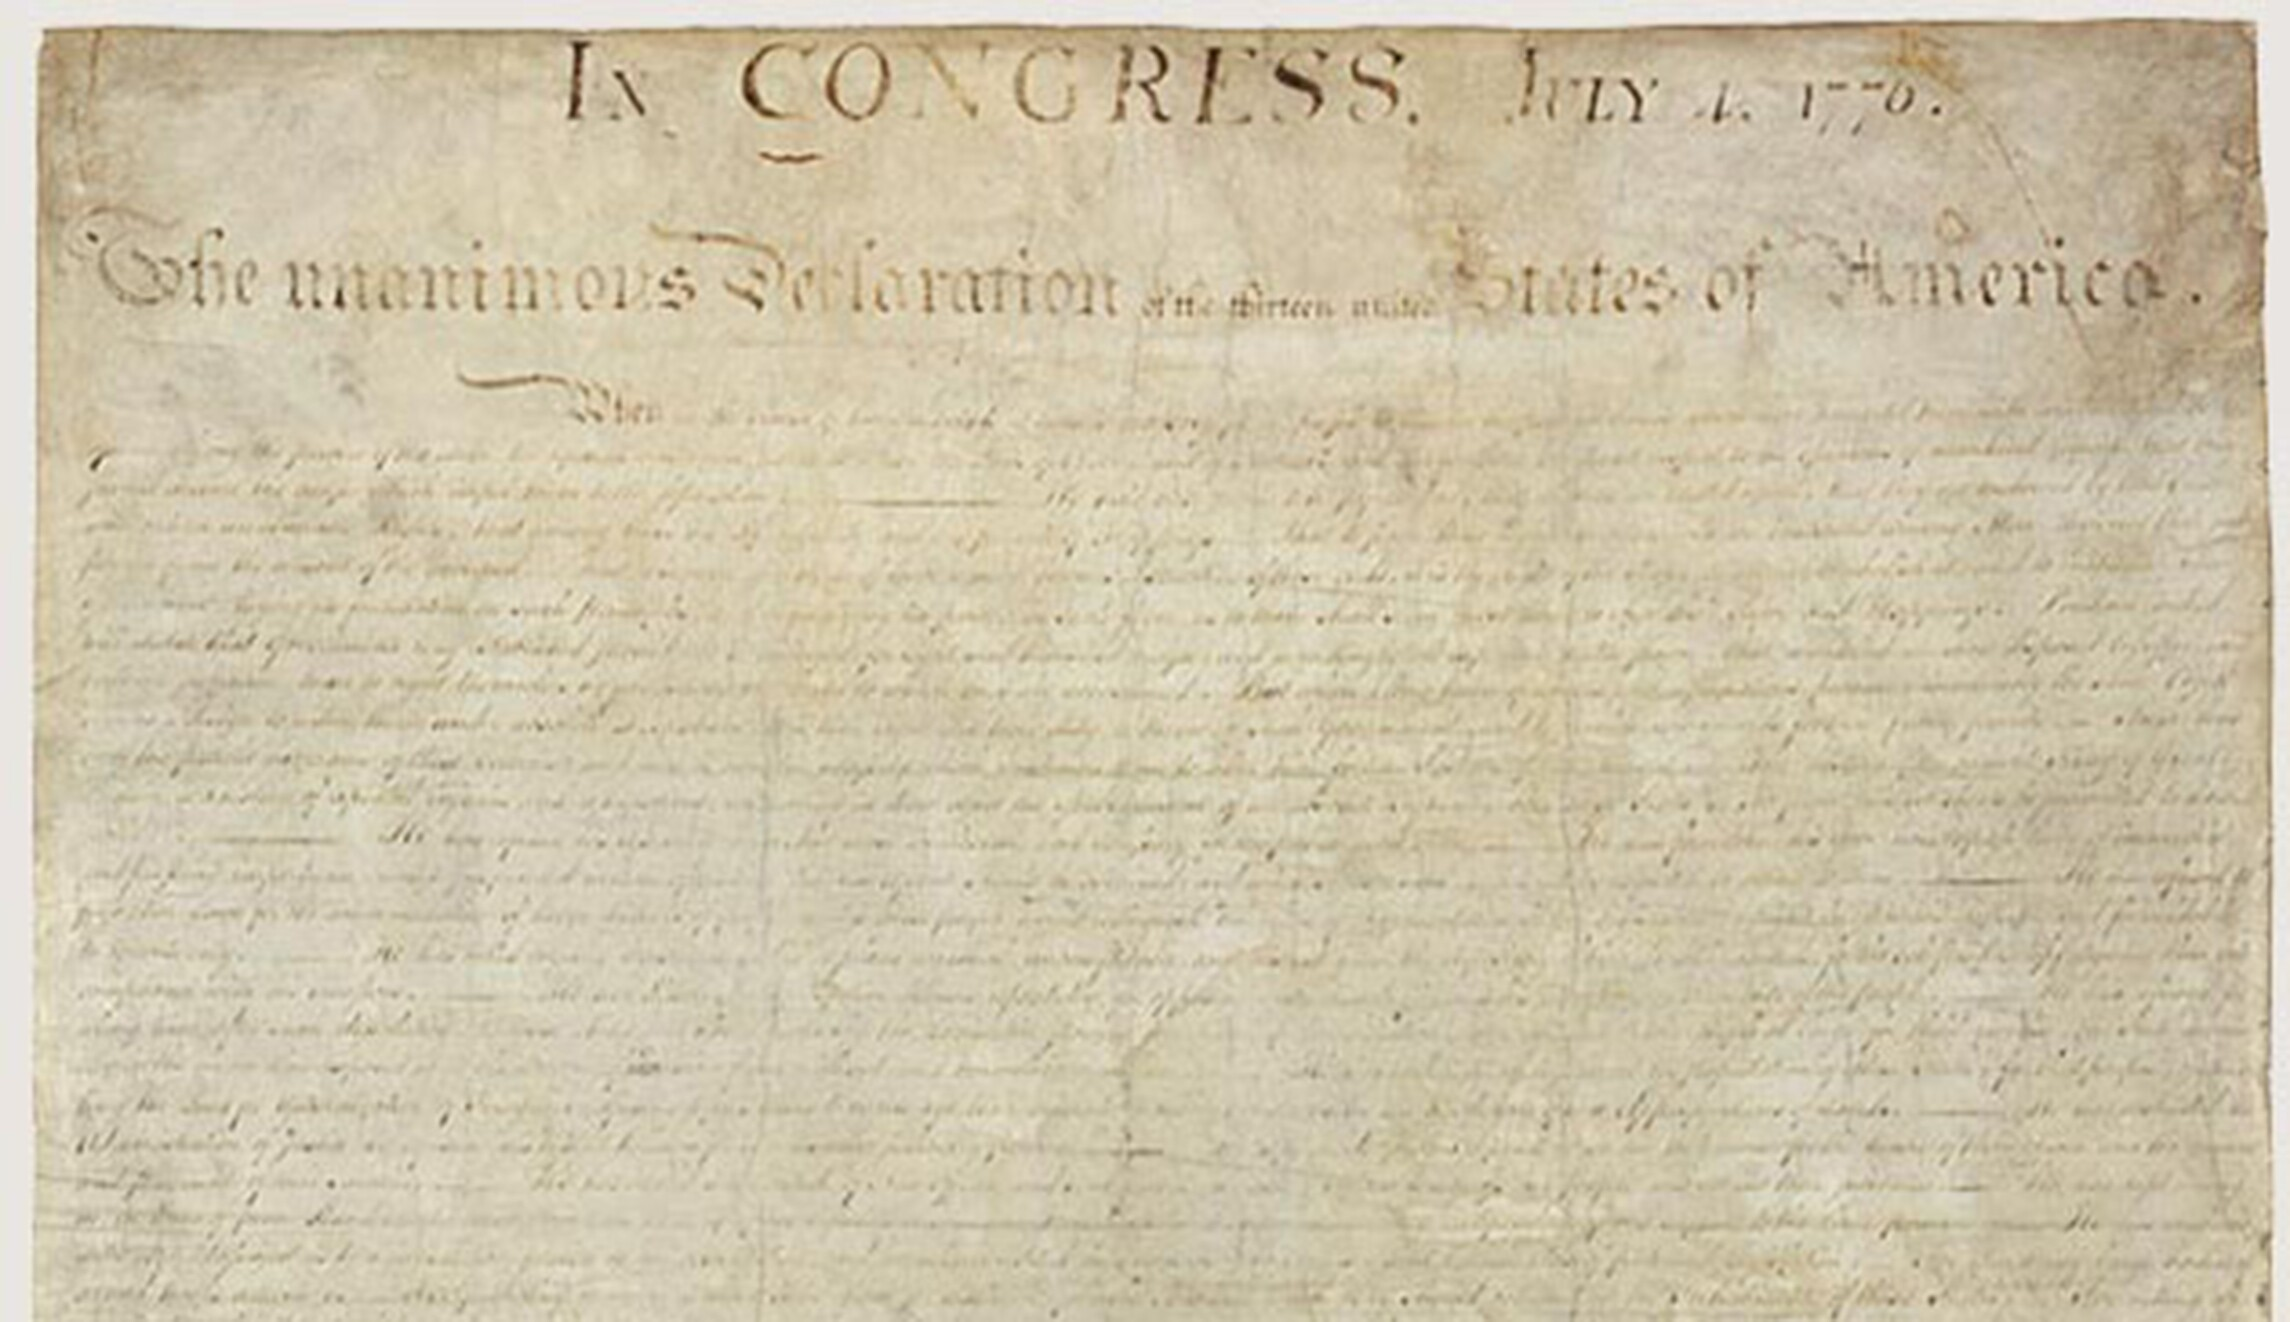 070417 Declaration of Independence text pic